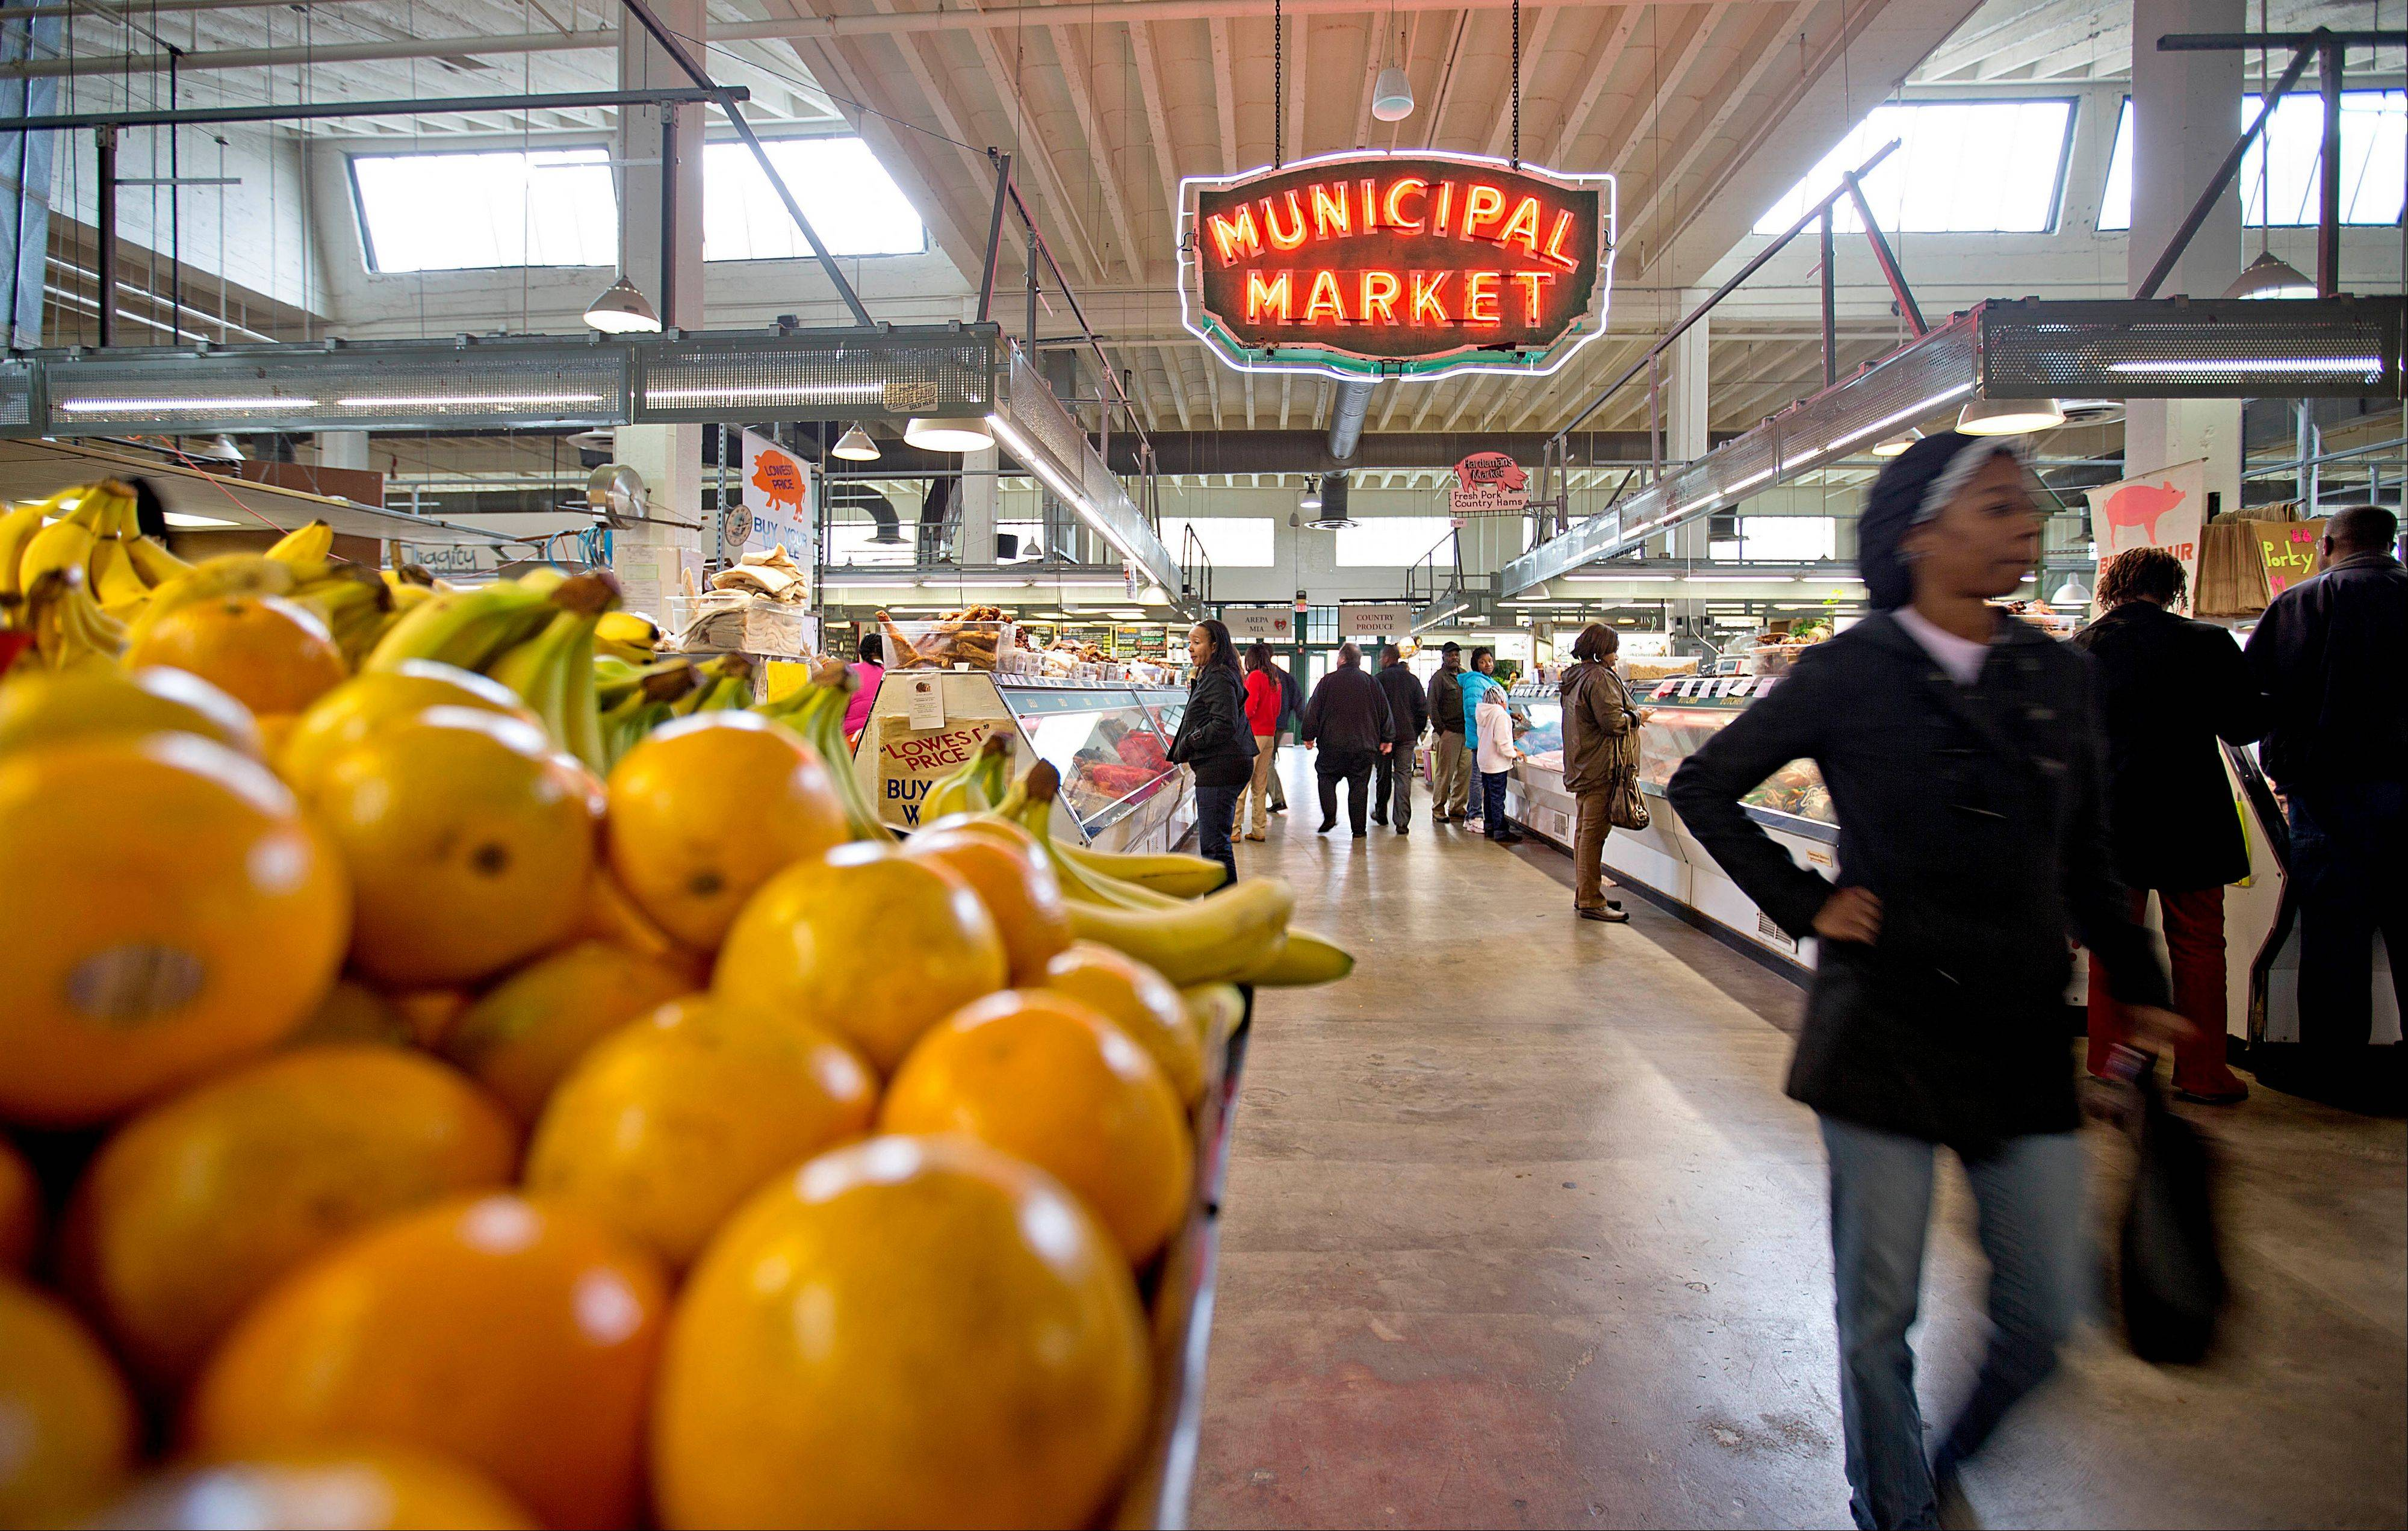 Associated Press/Dec. 20, 2013Shoppers passing through the Sweet Auburn Curb Market in Atlanta. Look no further than your dinner plate to understand how the sweeping farm bill affects you.